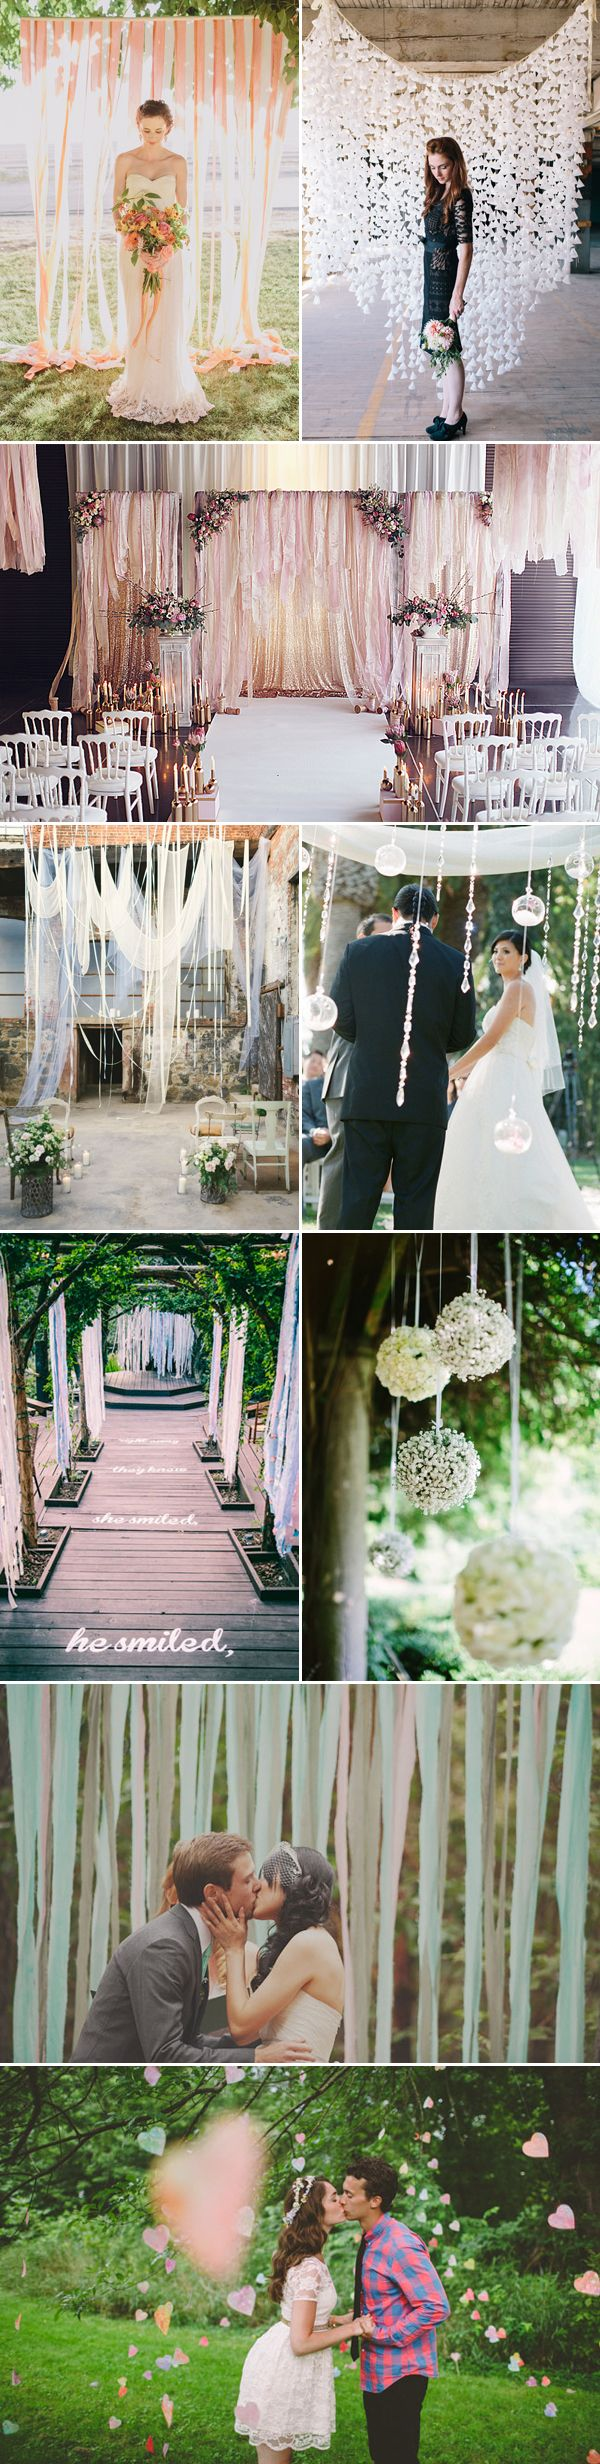 25 Creative Ceremony Backdrop Ideas - Romantic/ telon de fondo